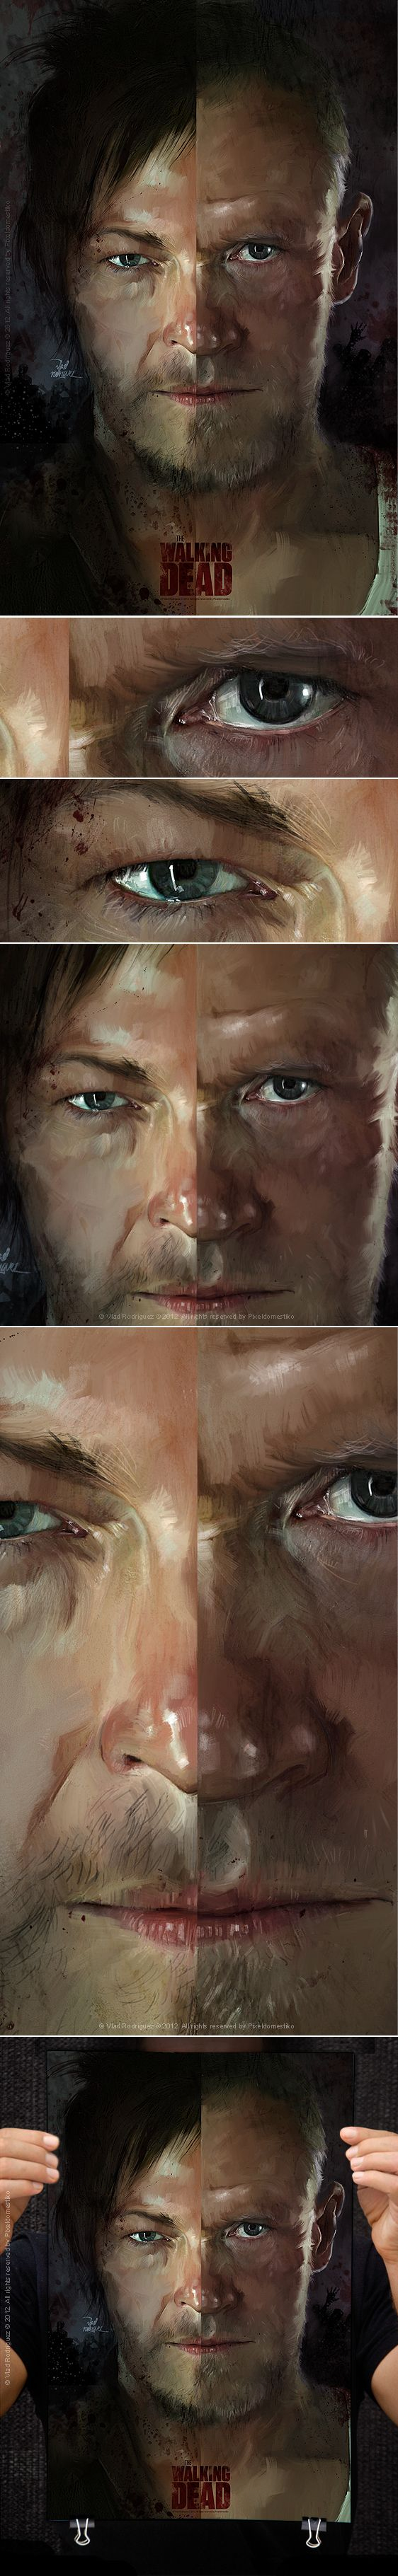 The Walking Dead ( Merle & Daryl Dixon) by Vlad Rodriguez, via Behance @W I L L fink